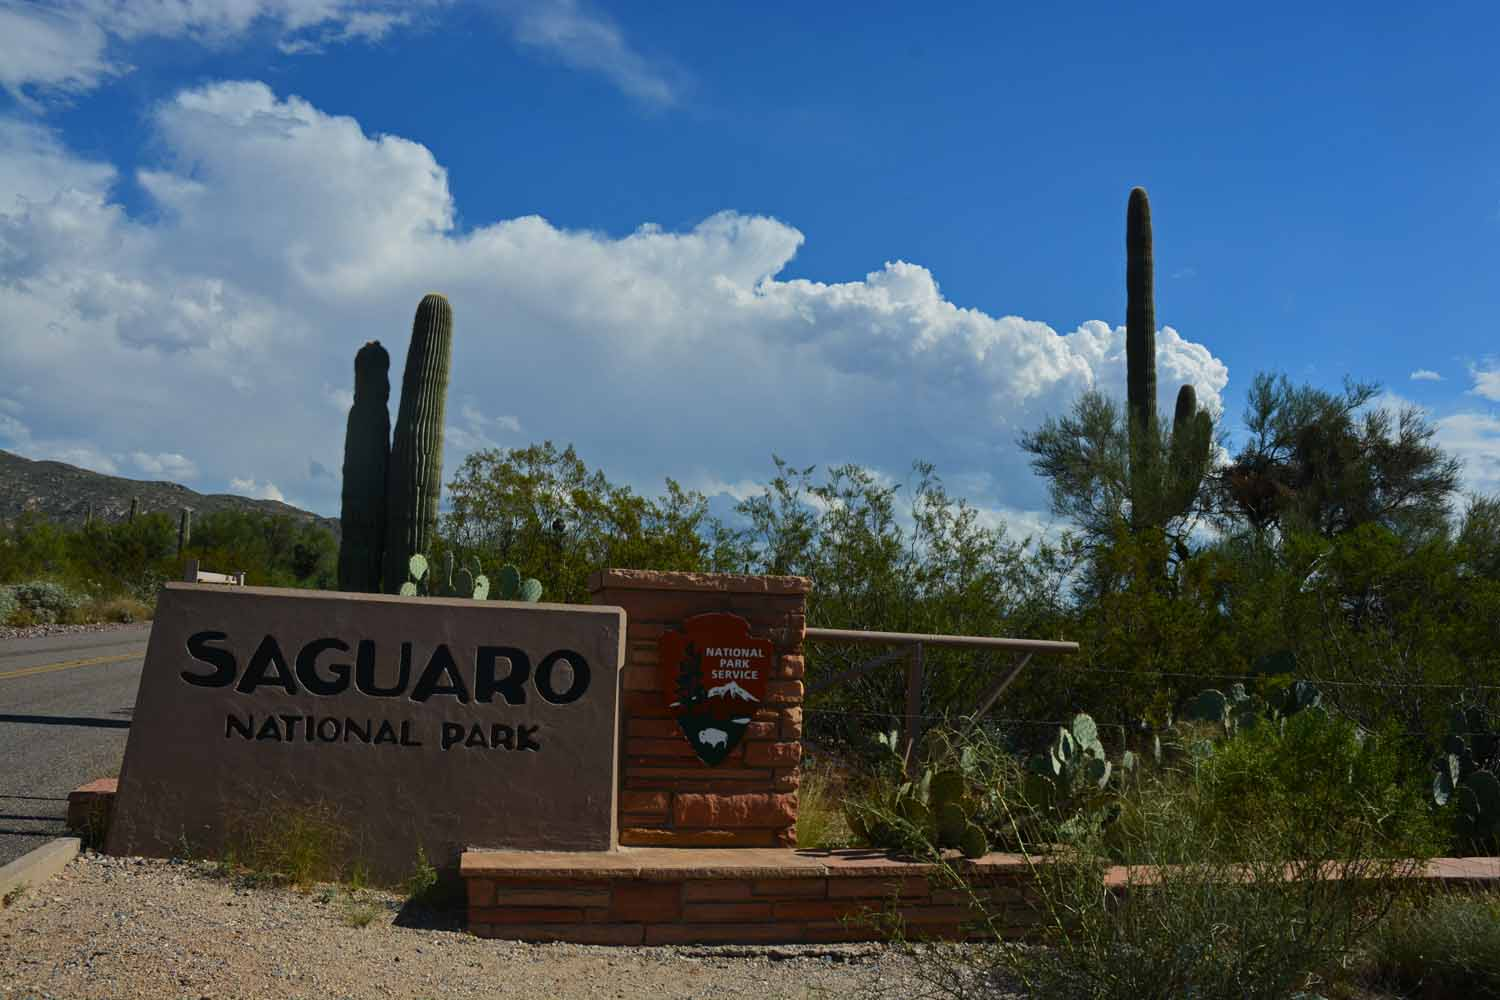 After checking out Phoenix and Tucs5don we take on Saguaro National Park...one more National Park checked off the list.